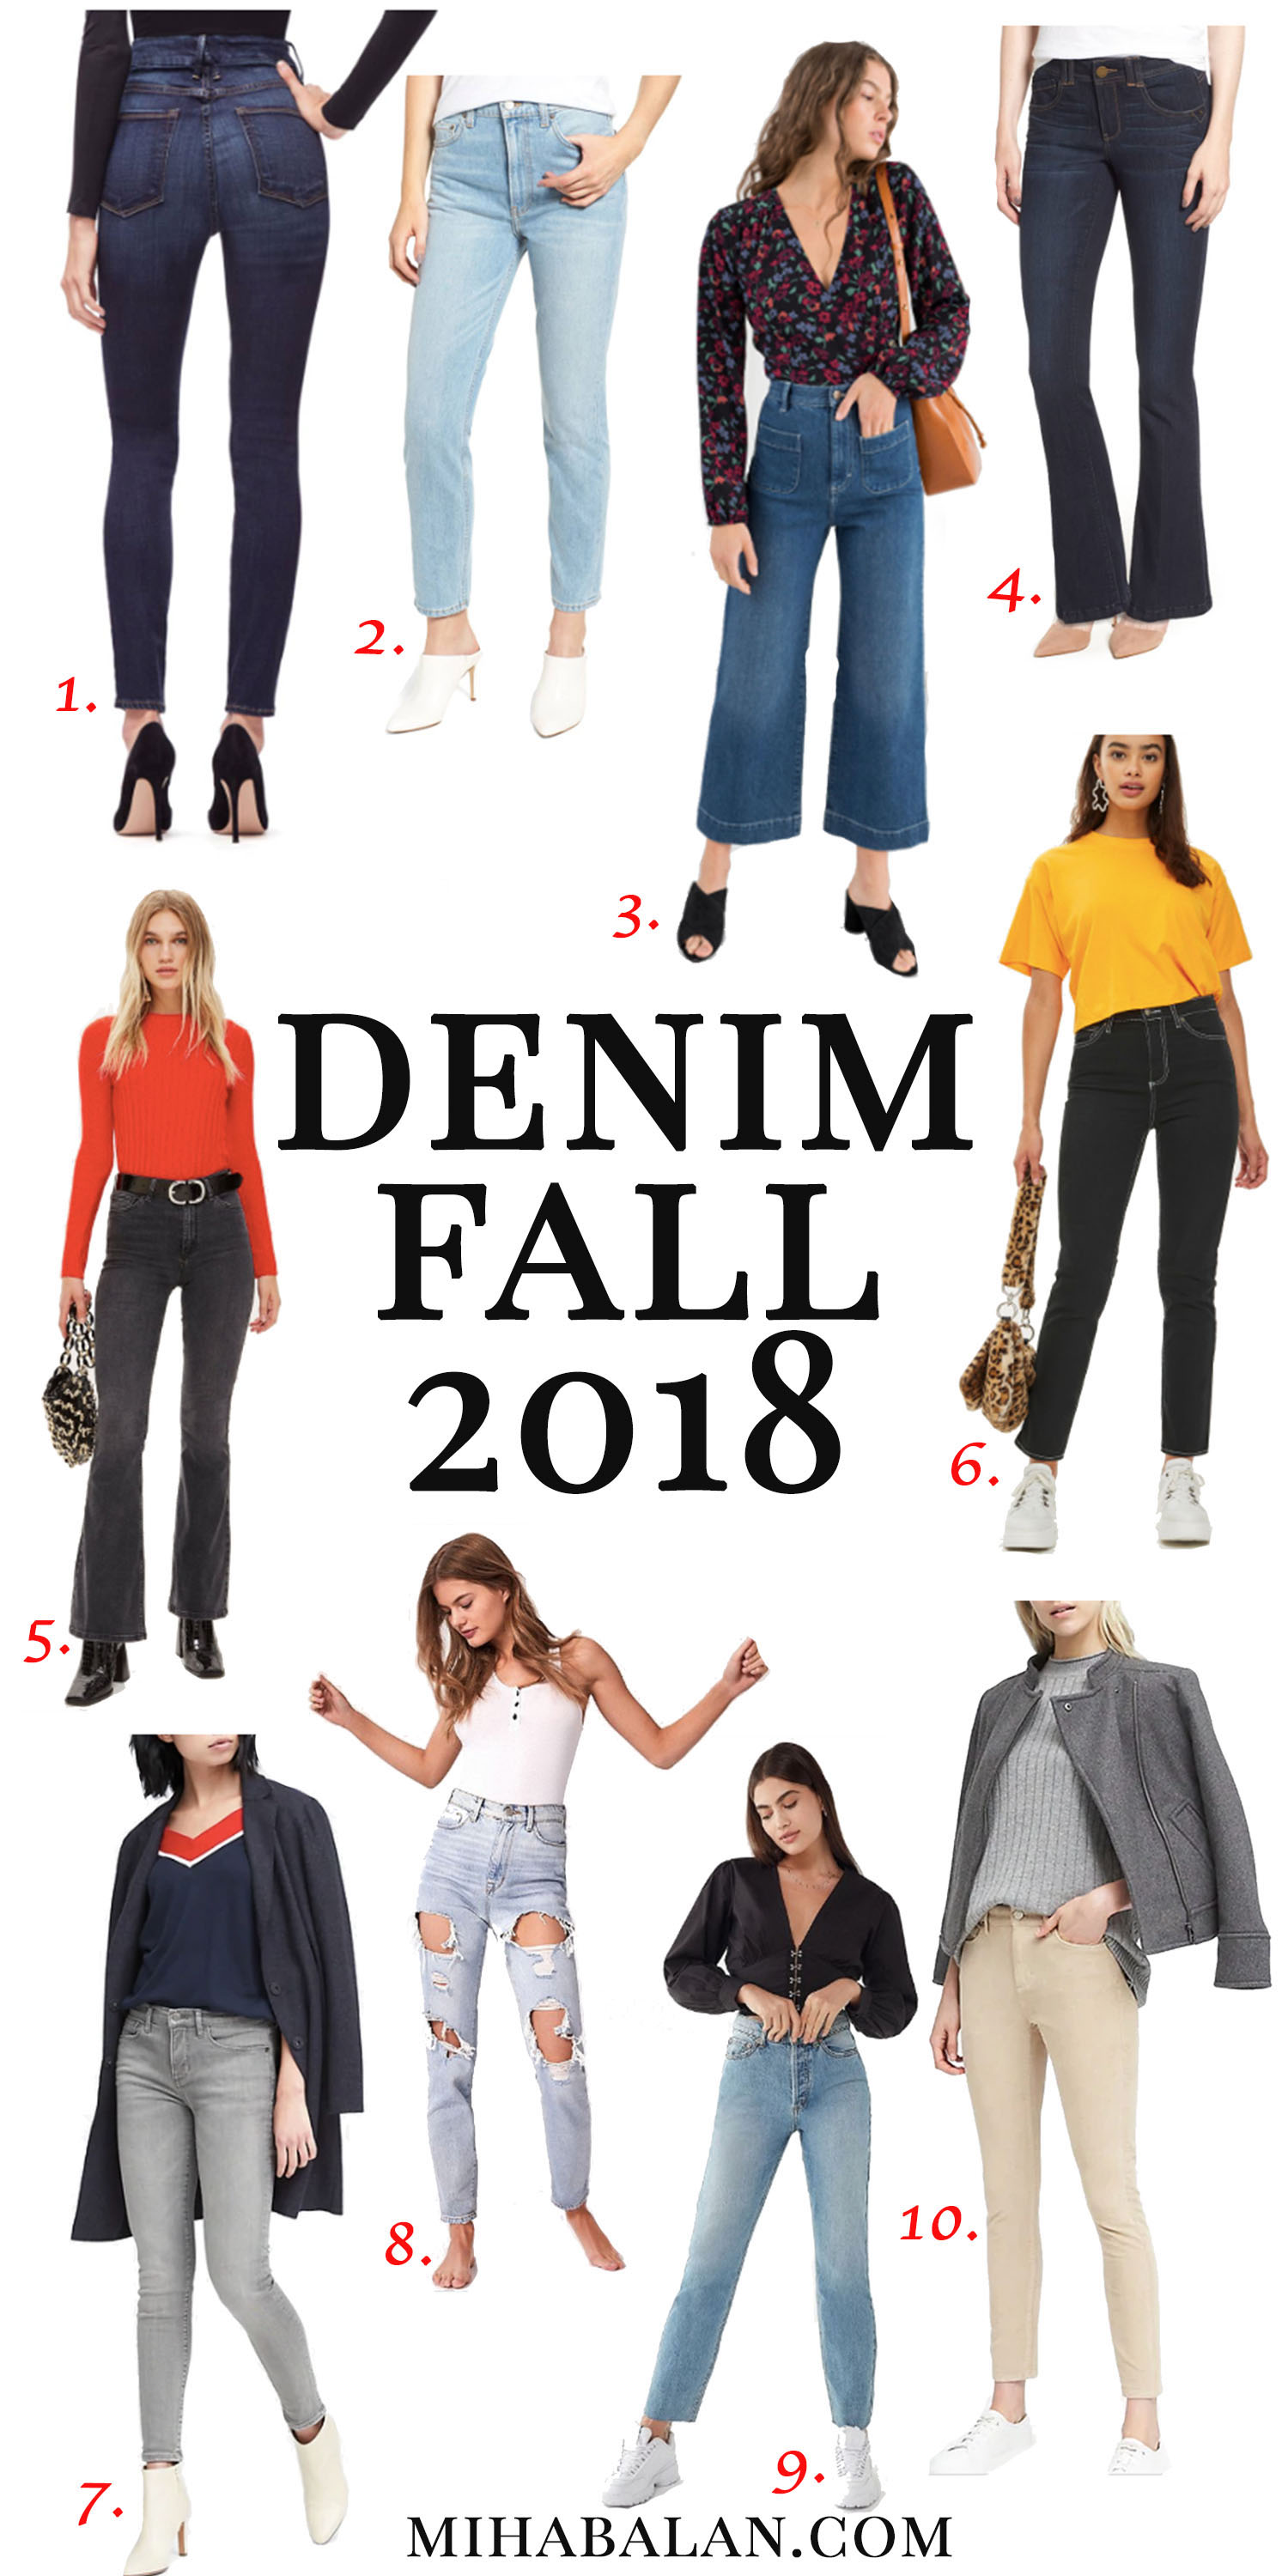 10 pairs of denim for fall 2018, denim addicted, fall fashion, fall essentials